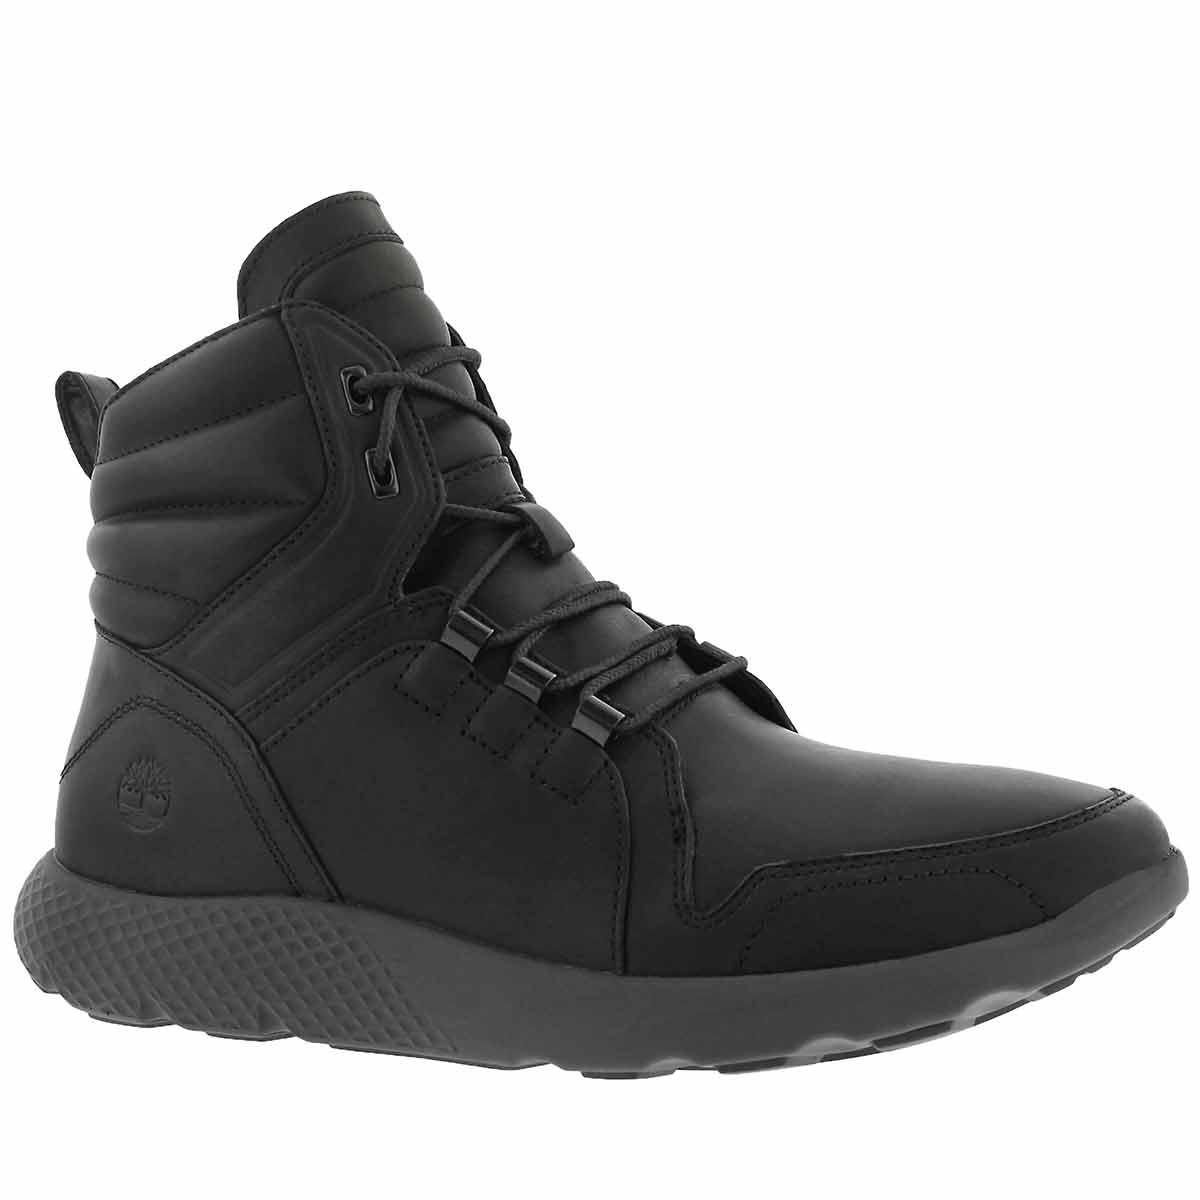 Men's FLY ROAM black casual ankle boots